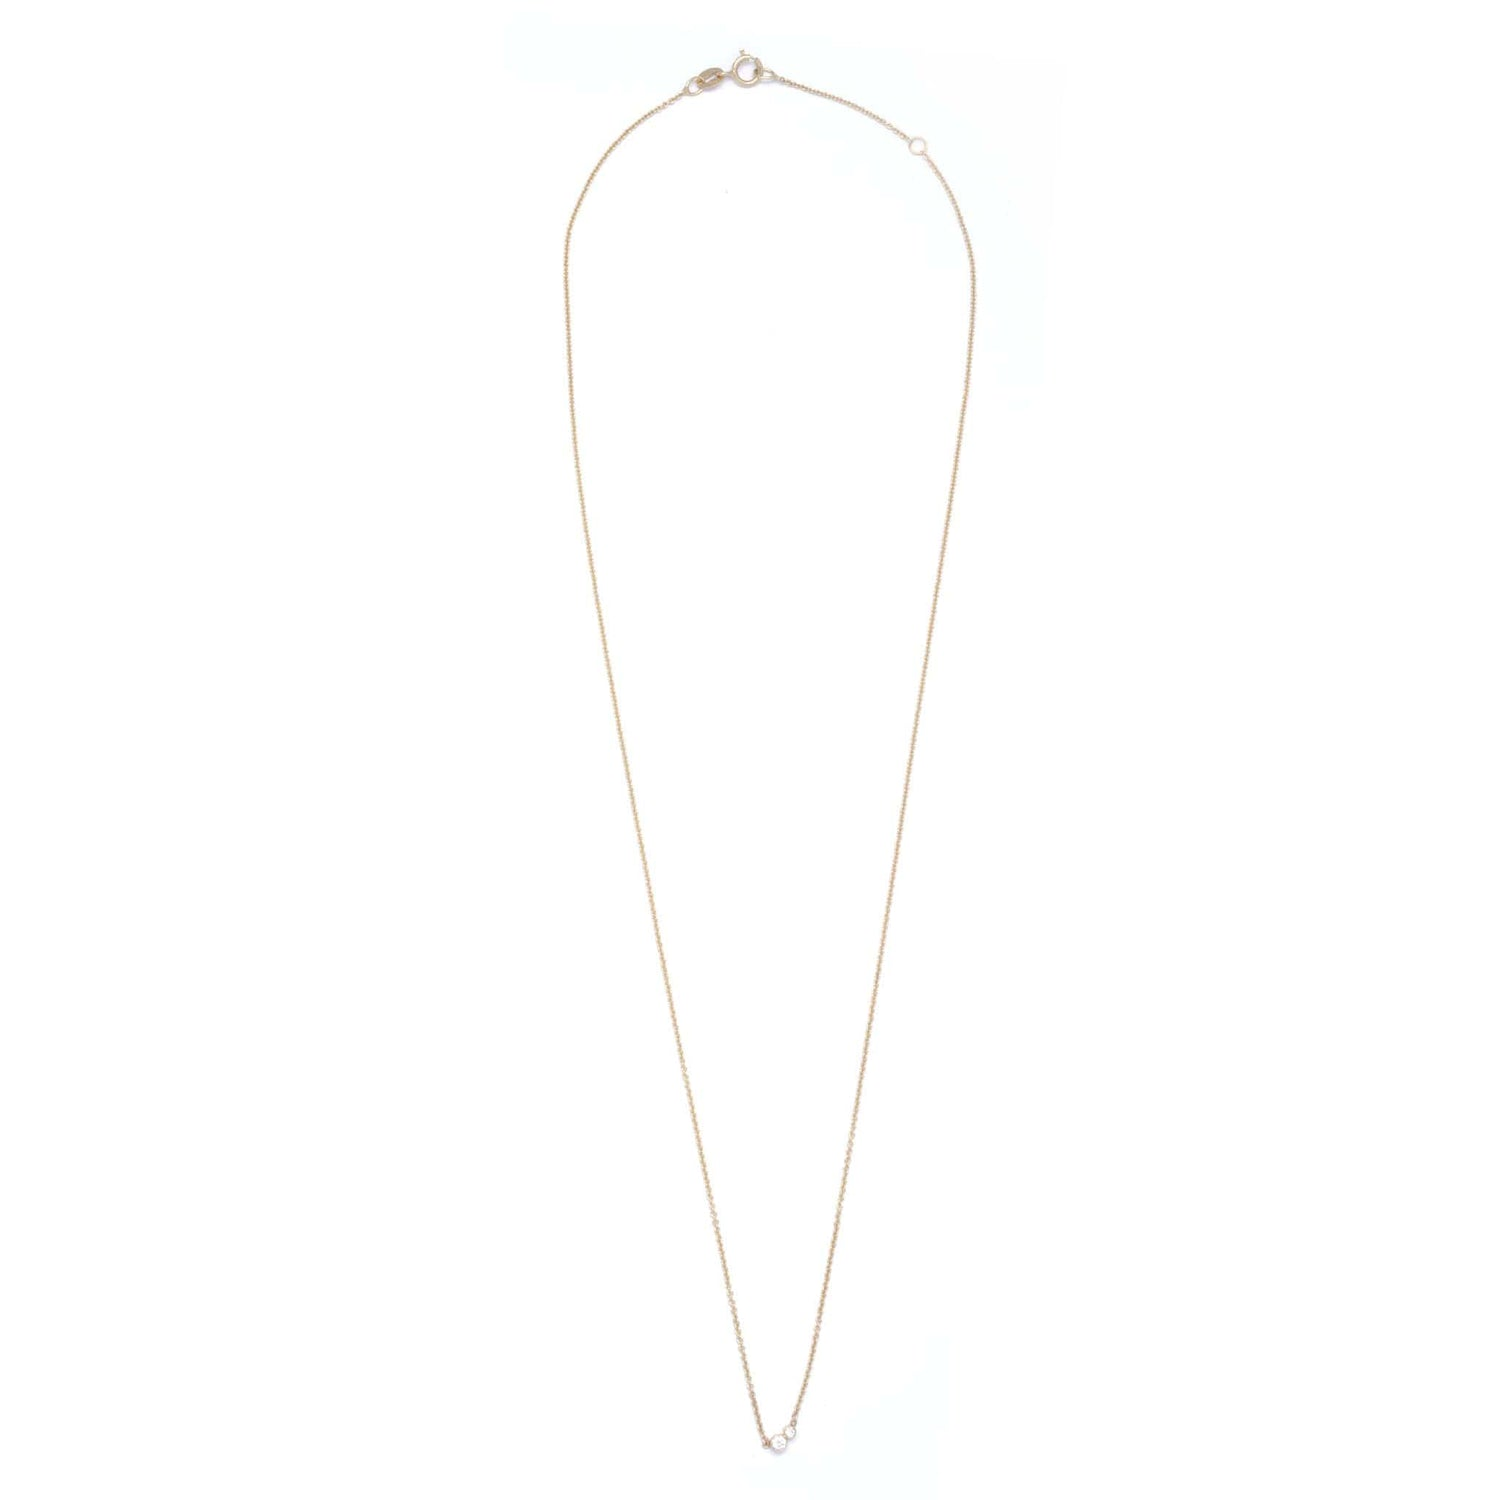 Double Diamond Yellow Gold Station Necklace - Curated Los Angeles